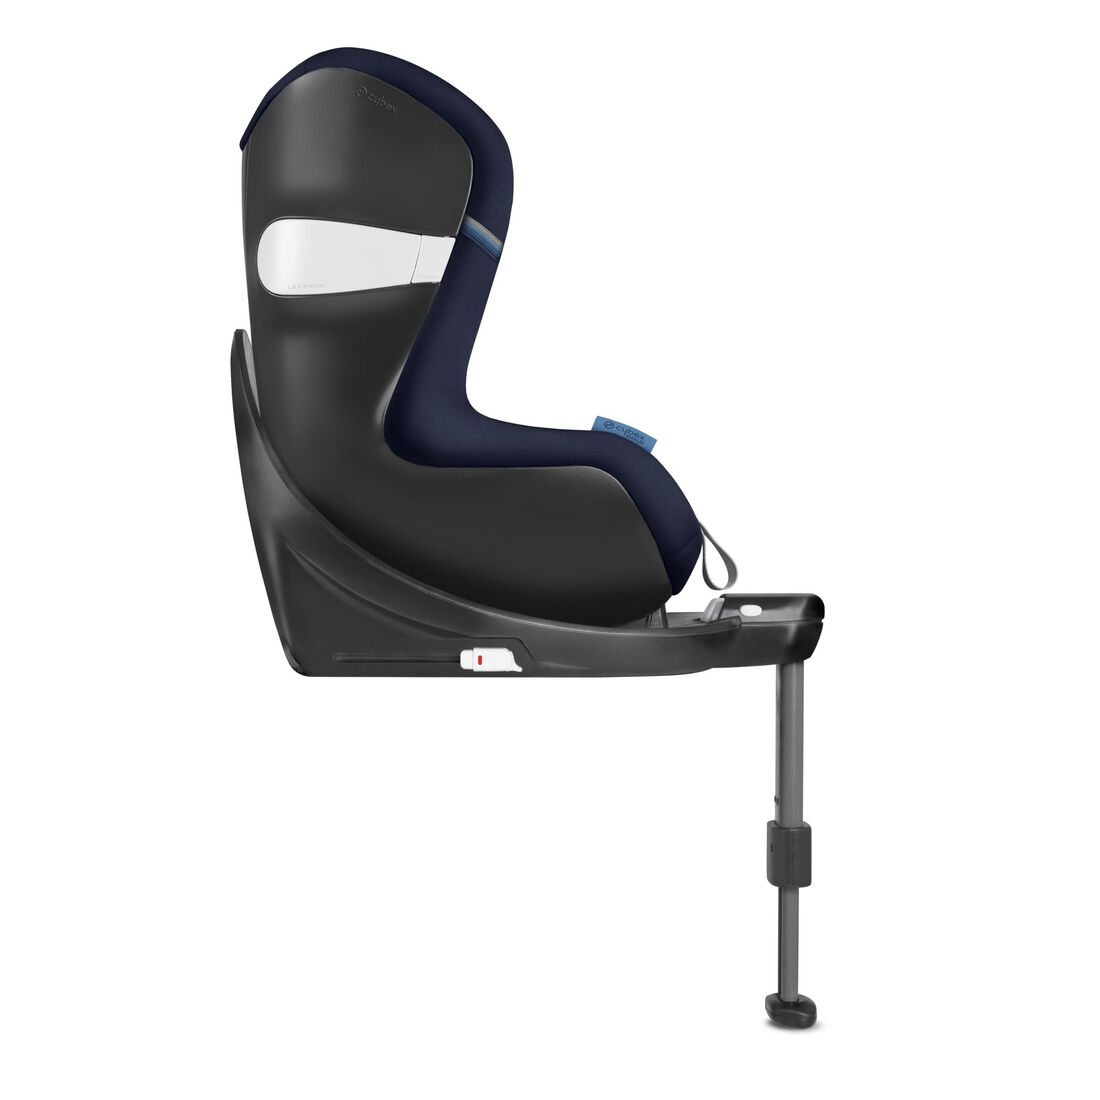 CYBEX Sirona M2 i-Size - Navy Blue in Navy Blue large